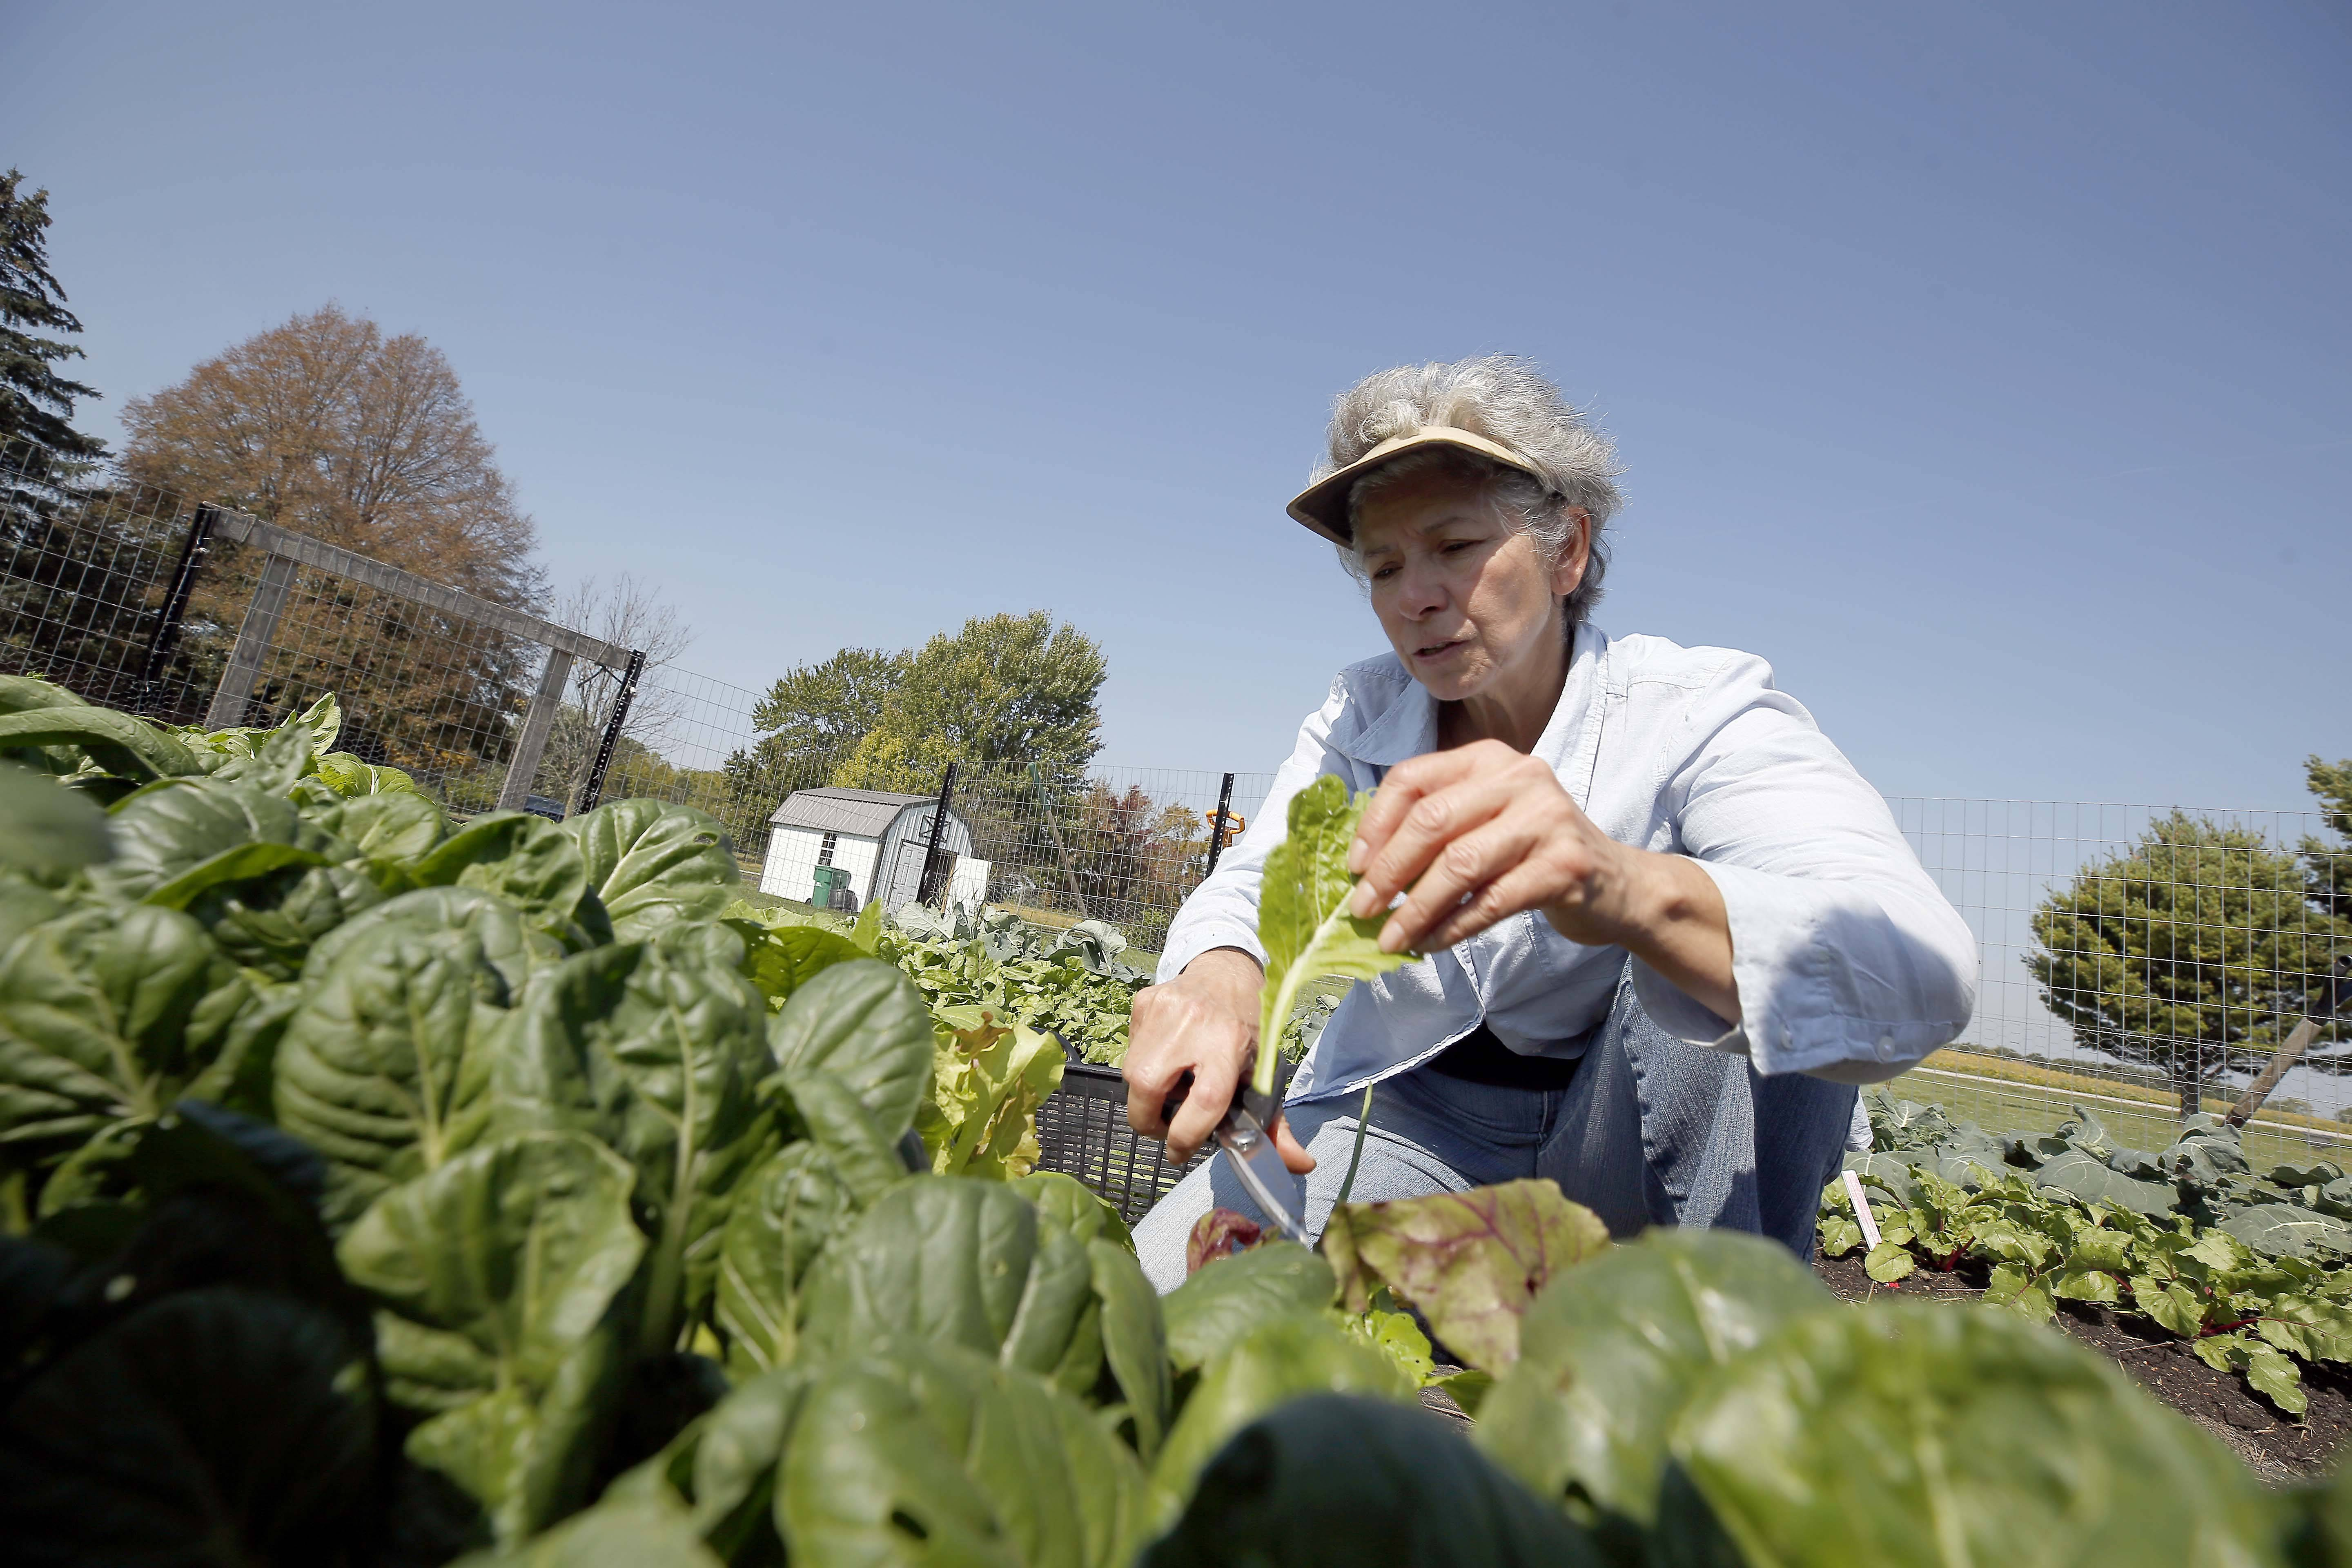 'Farm to Table' dinner to benefit Elgin food co-op